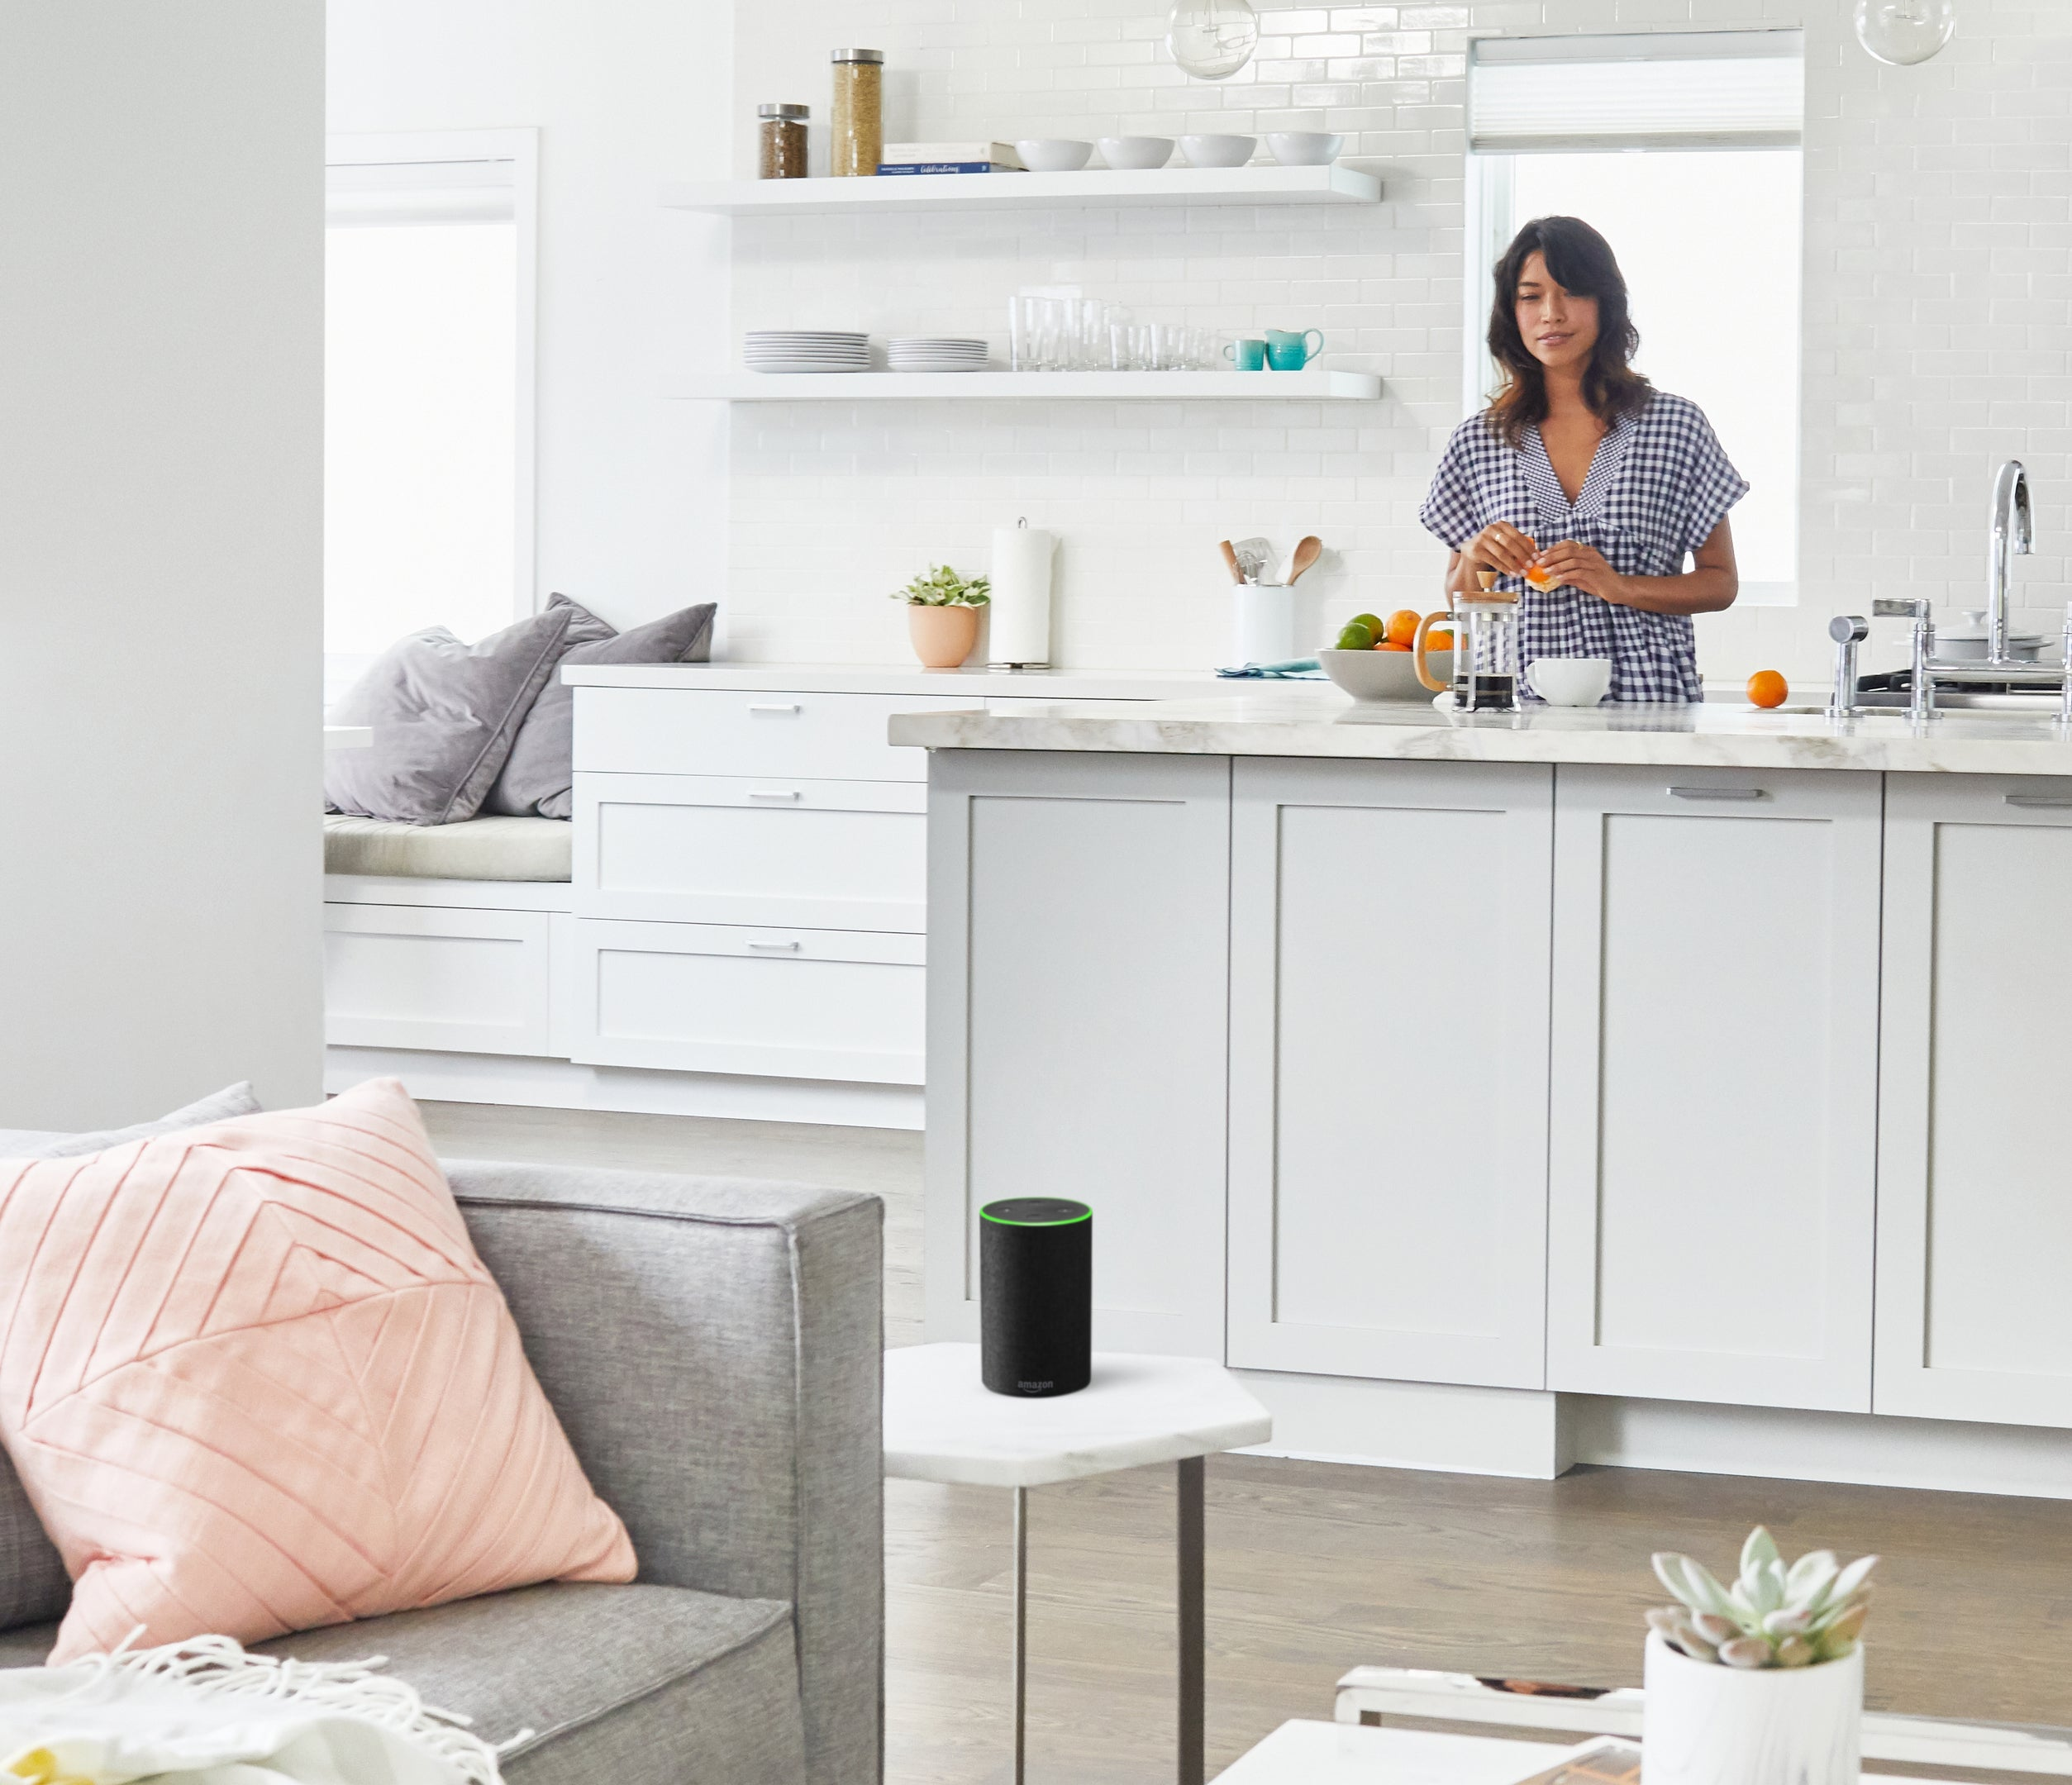 A woman peeling an orange at the kitchen counter, looking at an Echo smart speaker on a small table in the adjacent living room.